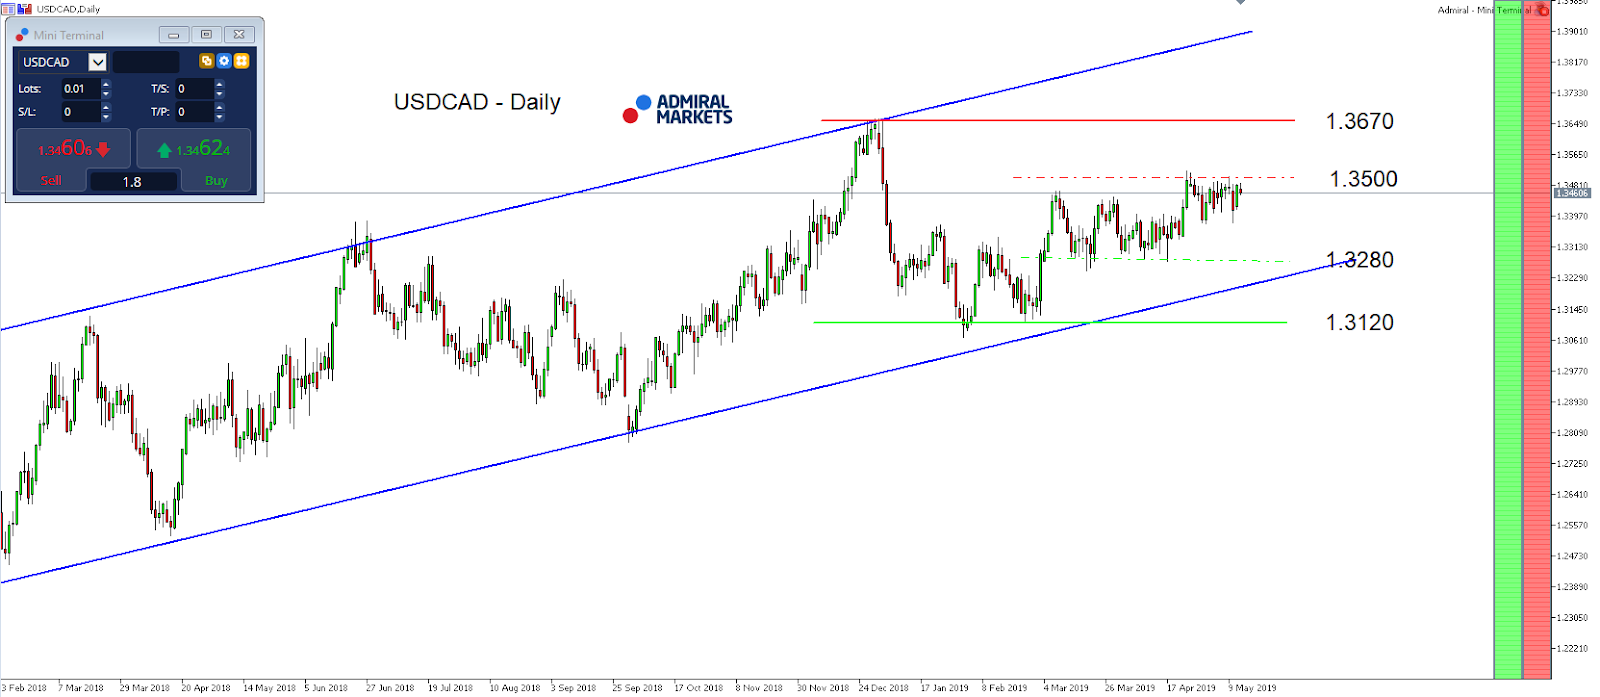 USD/CAD index daily chart